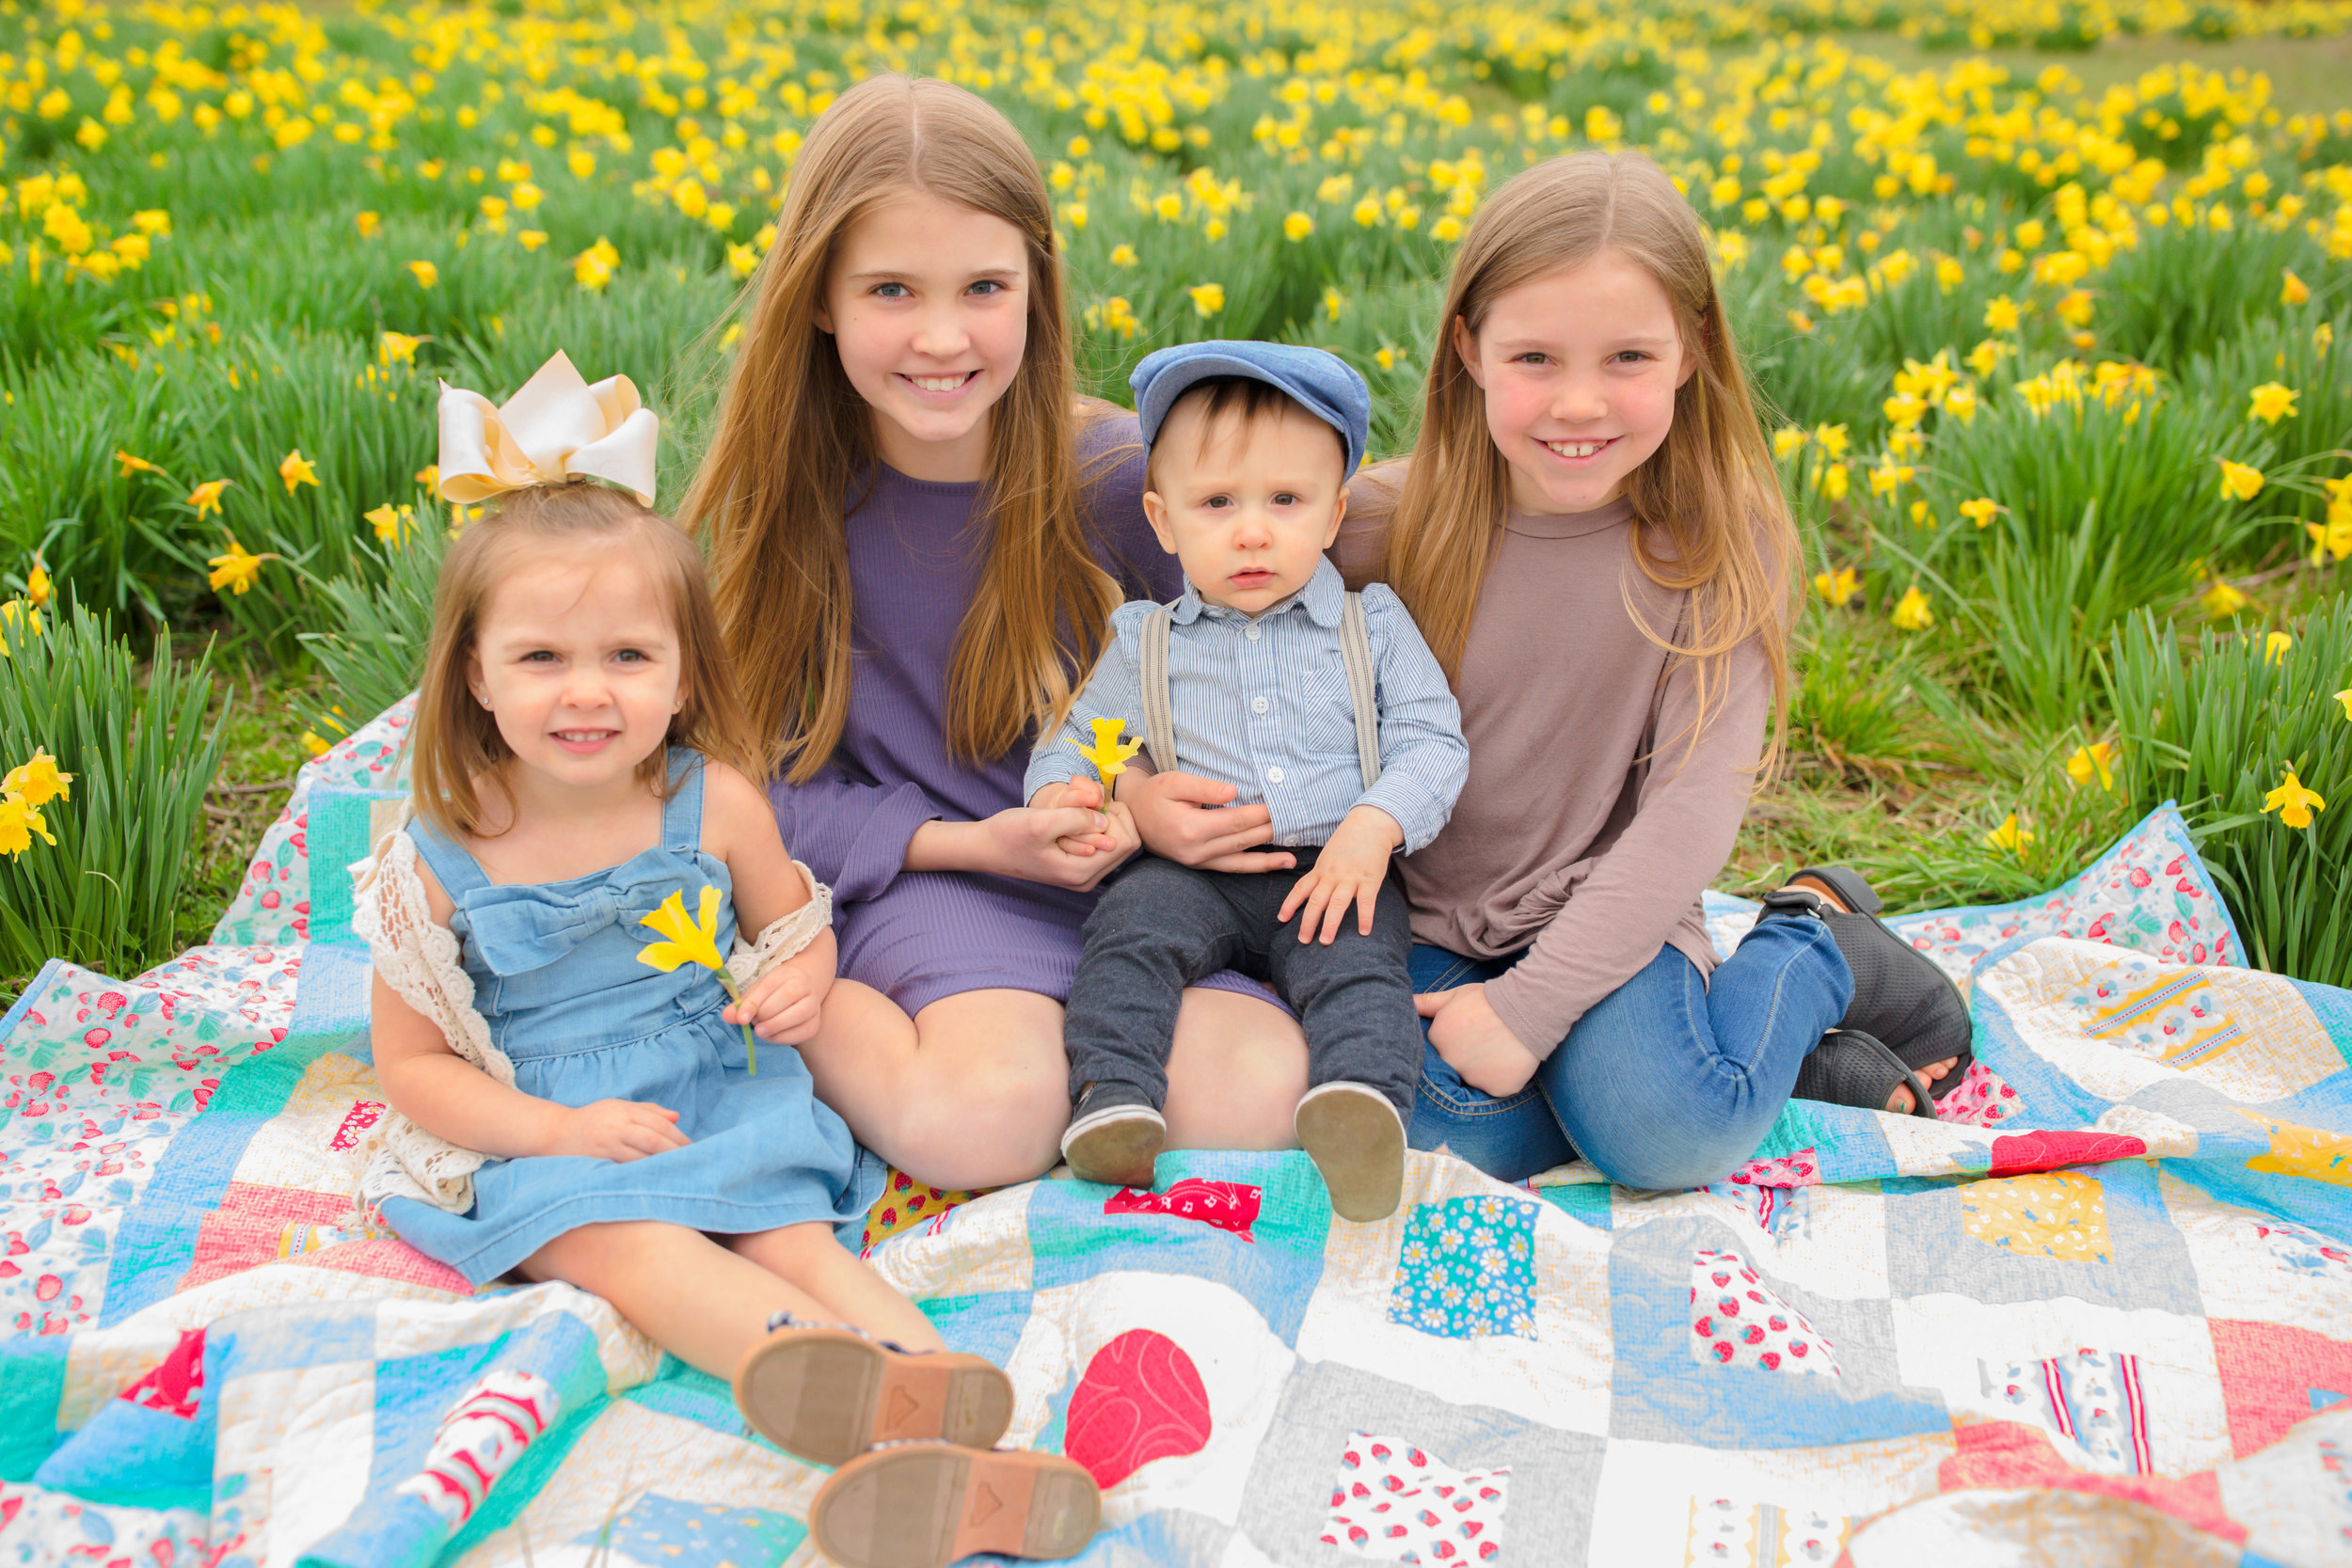 Gann Family Spring Session - Nashville Family Photographer - Chelsea Meadows Photography (51).jpg